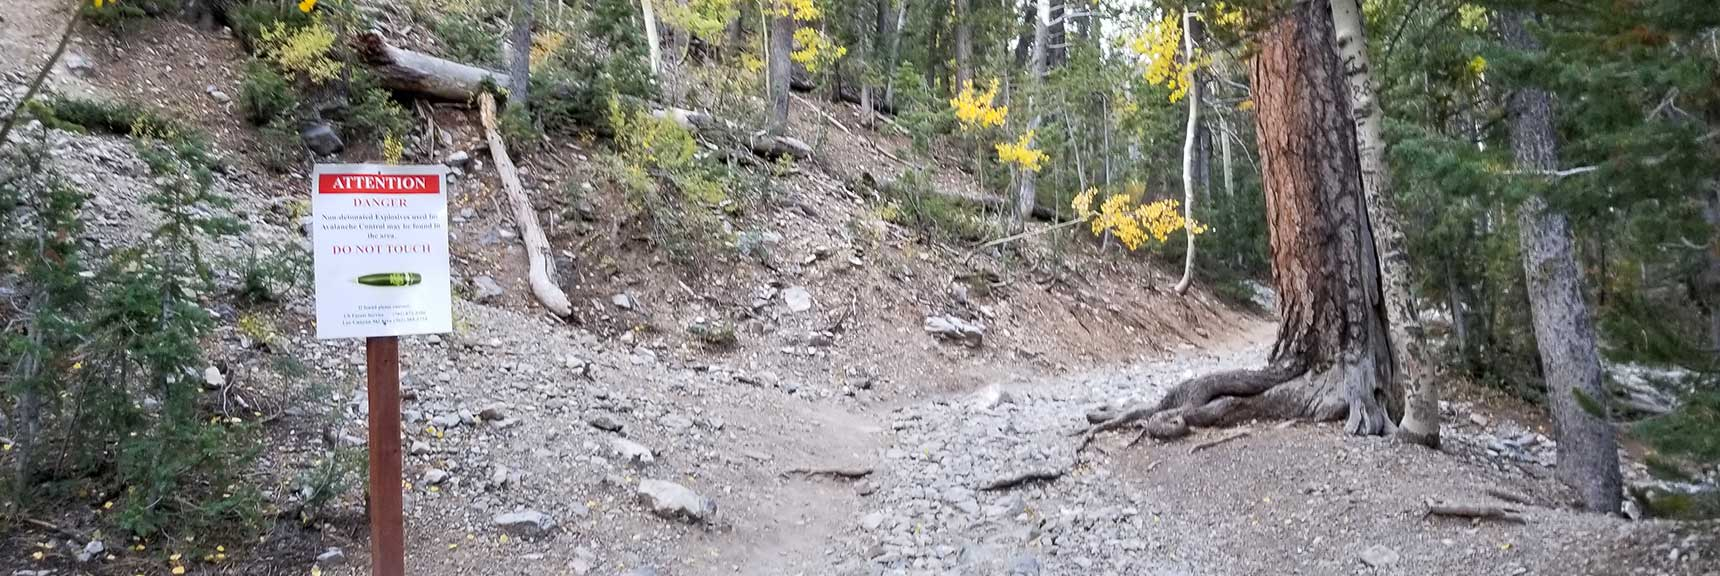 Avalanche Slope & Ski Area to Left, Bristlecone Pine Trail to Right in Lee Canyon, Mt. Charleston Wilderness, Nevada